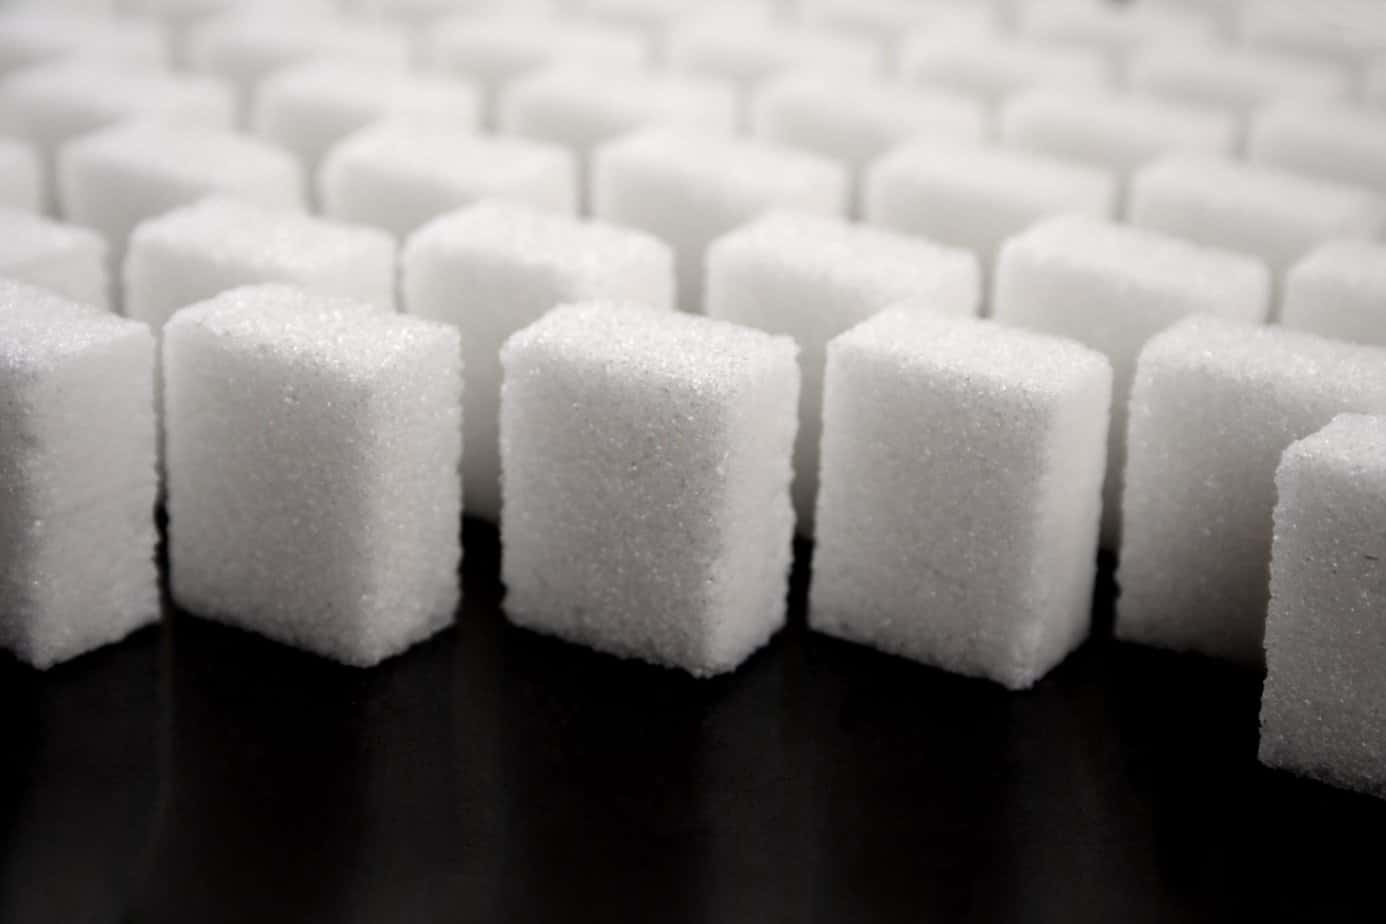 Sugar cubes showing why you should think about reduce your sugar intake in 3 easy steps